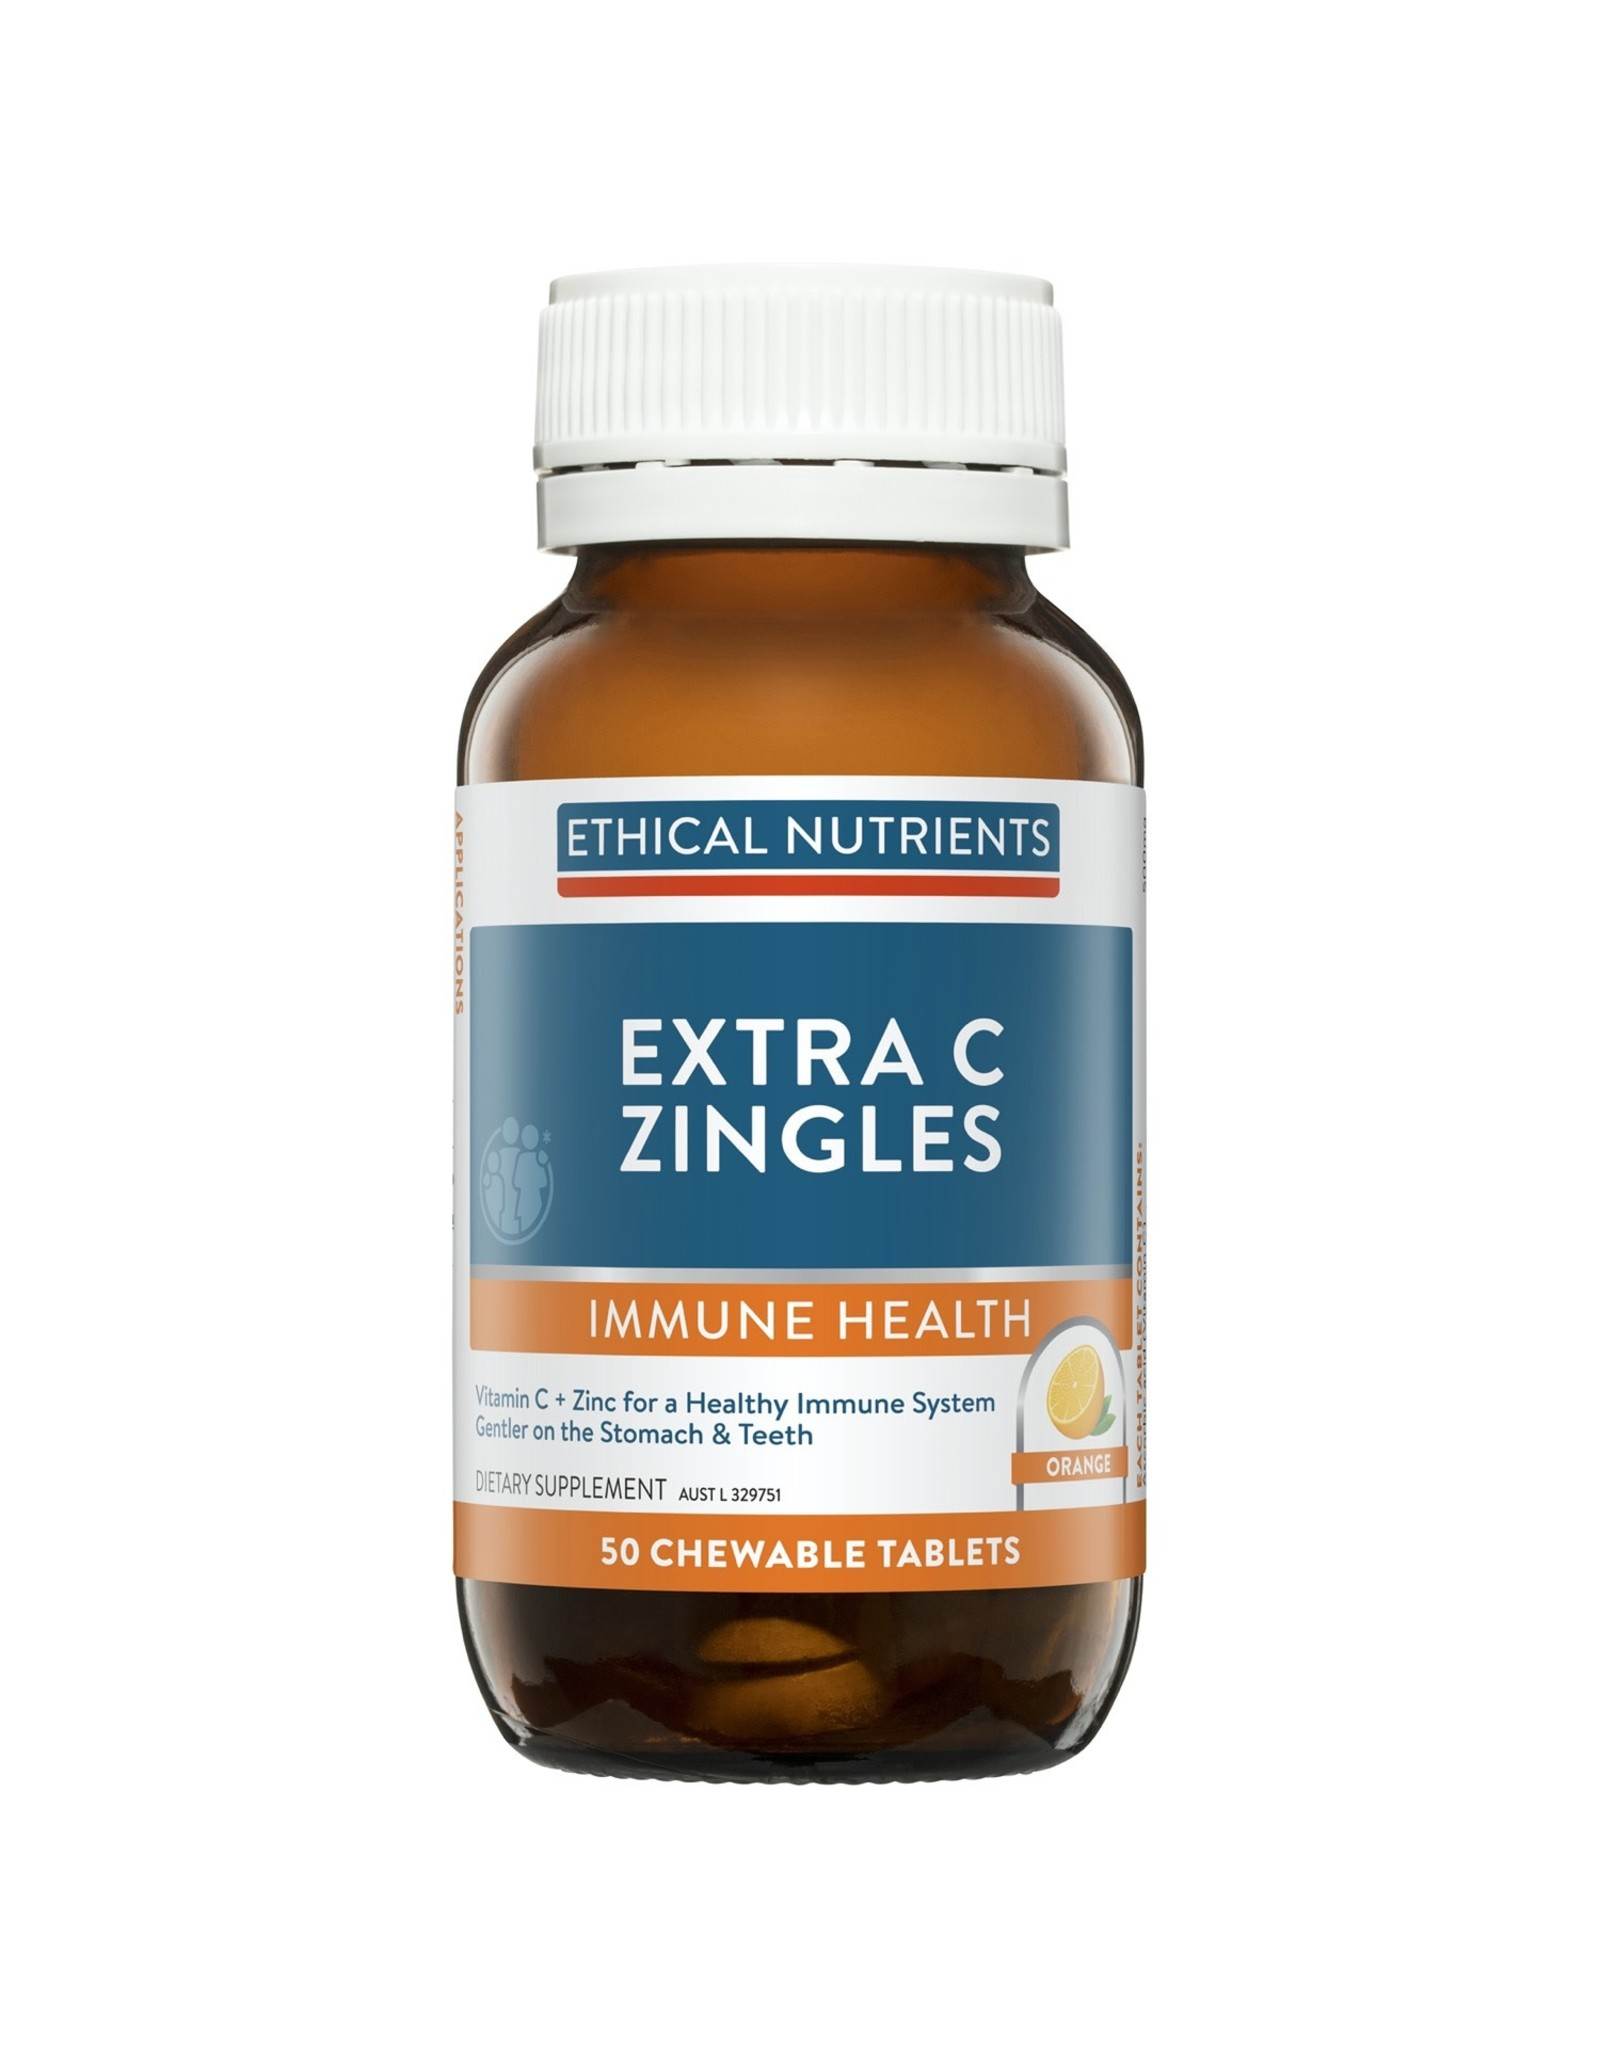 Ethical Nutrients Extra C Zingles 50 Chewable Tablets